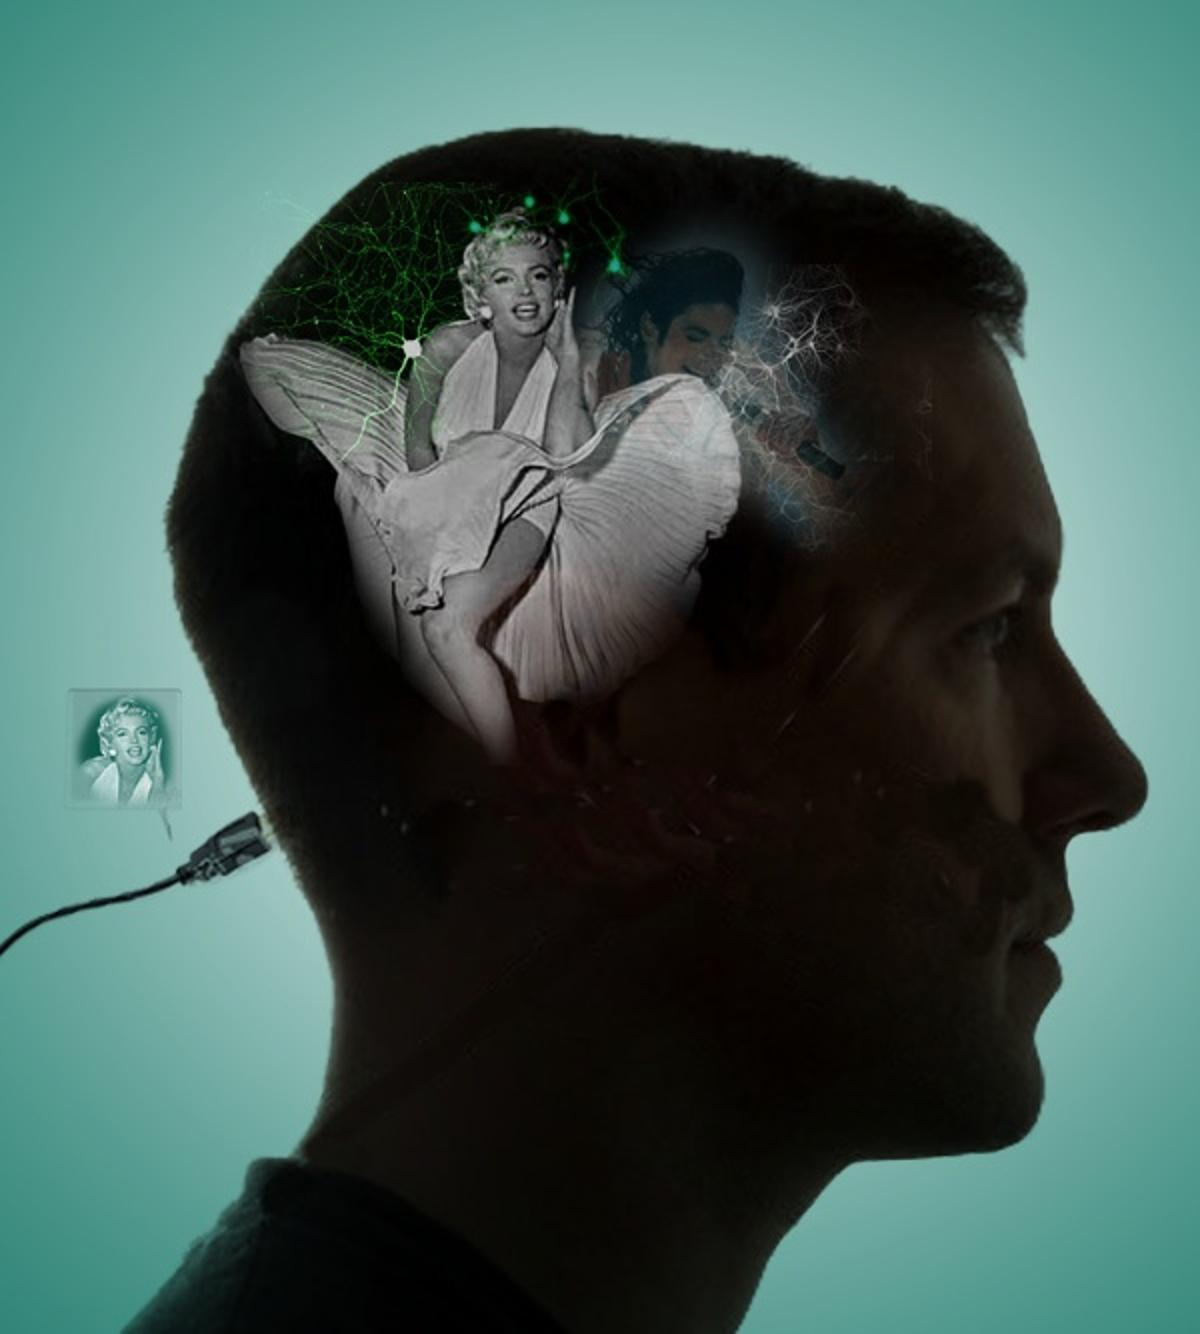 A dozen subjects with their brains wired up to a computer interface have succeeded in manipulating onscreen images using only the power of thought